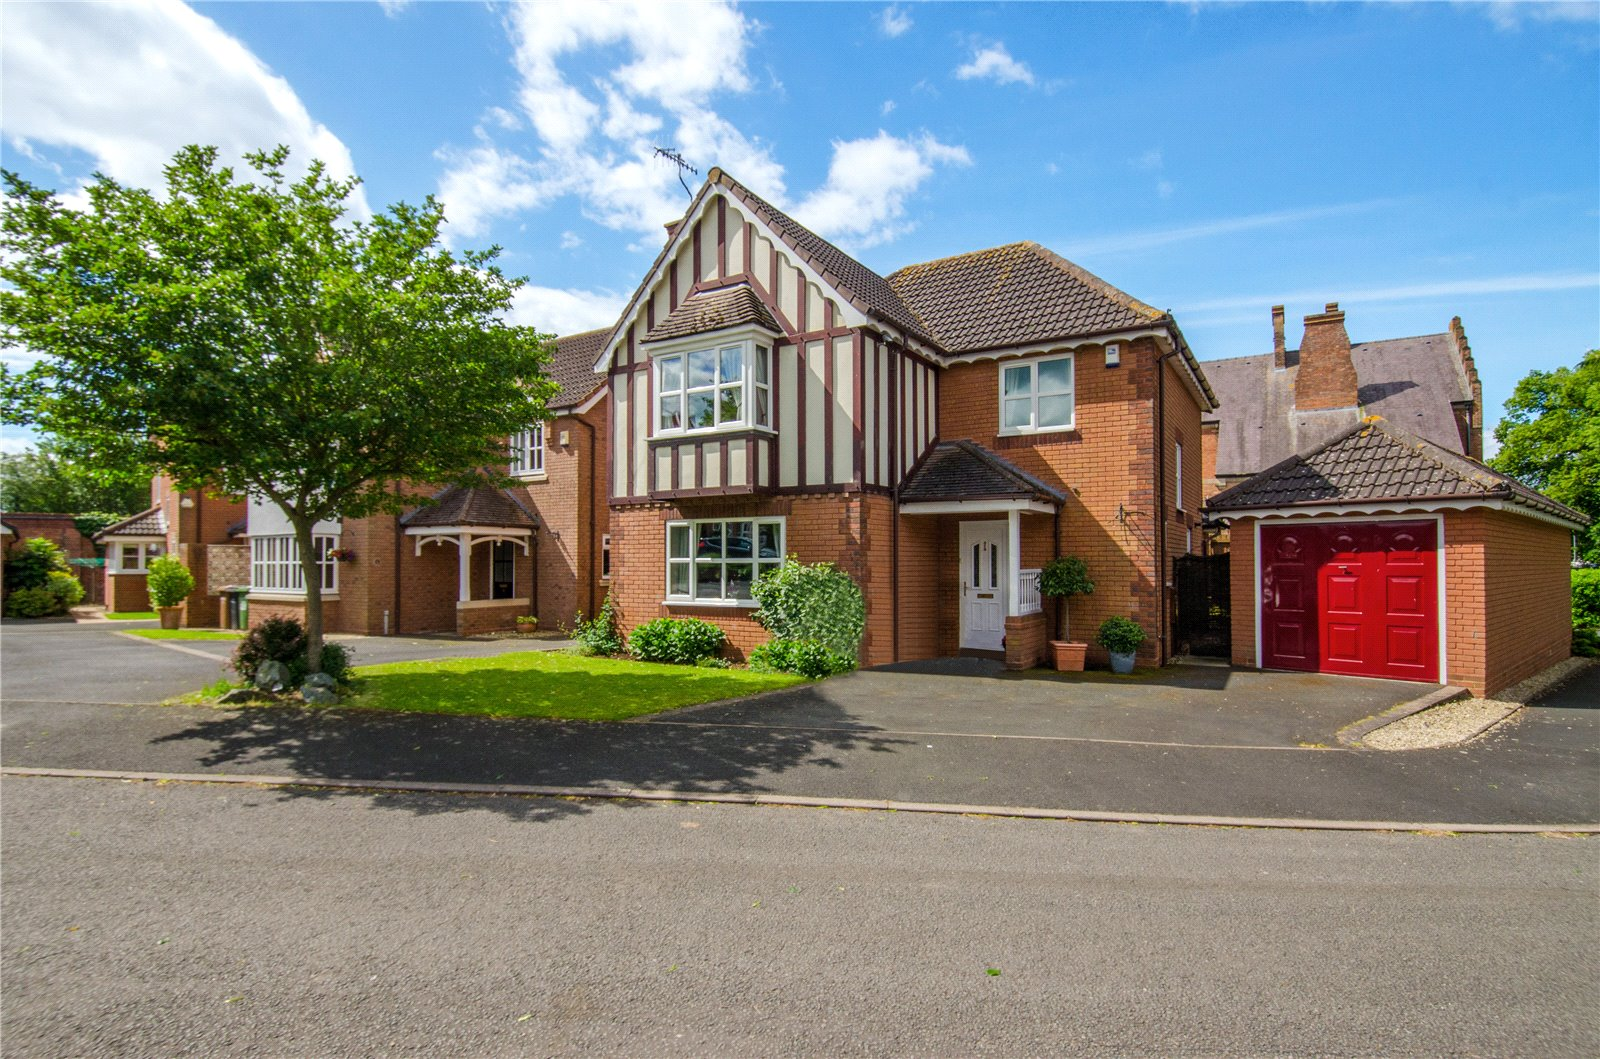 4 Bedrooms Detached House for sale in Vimiera Close Worcester WR5